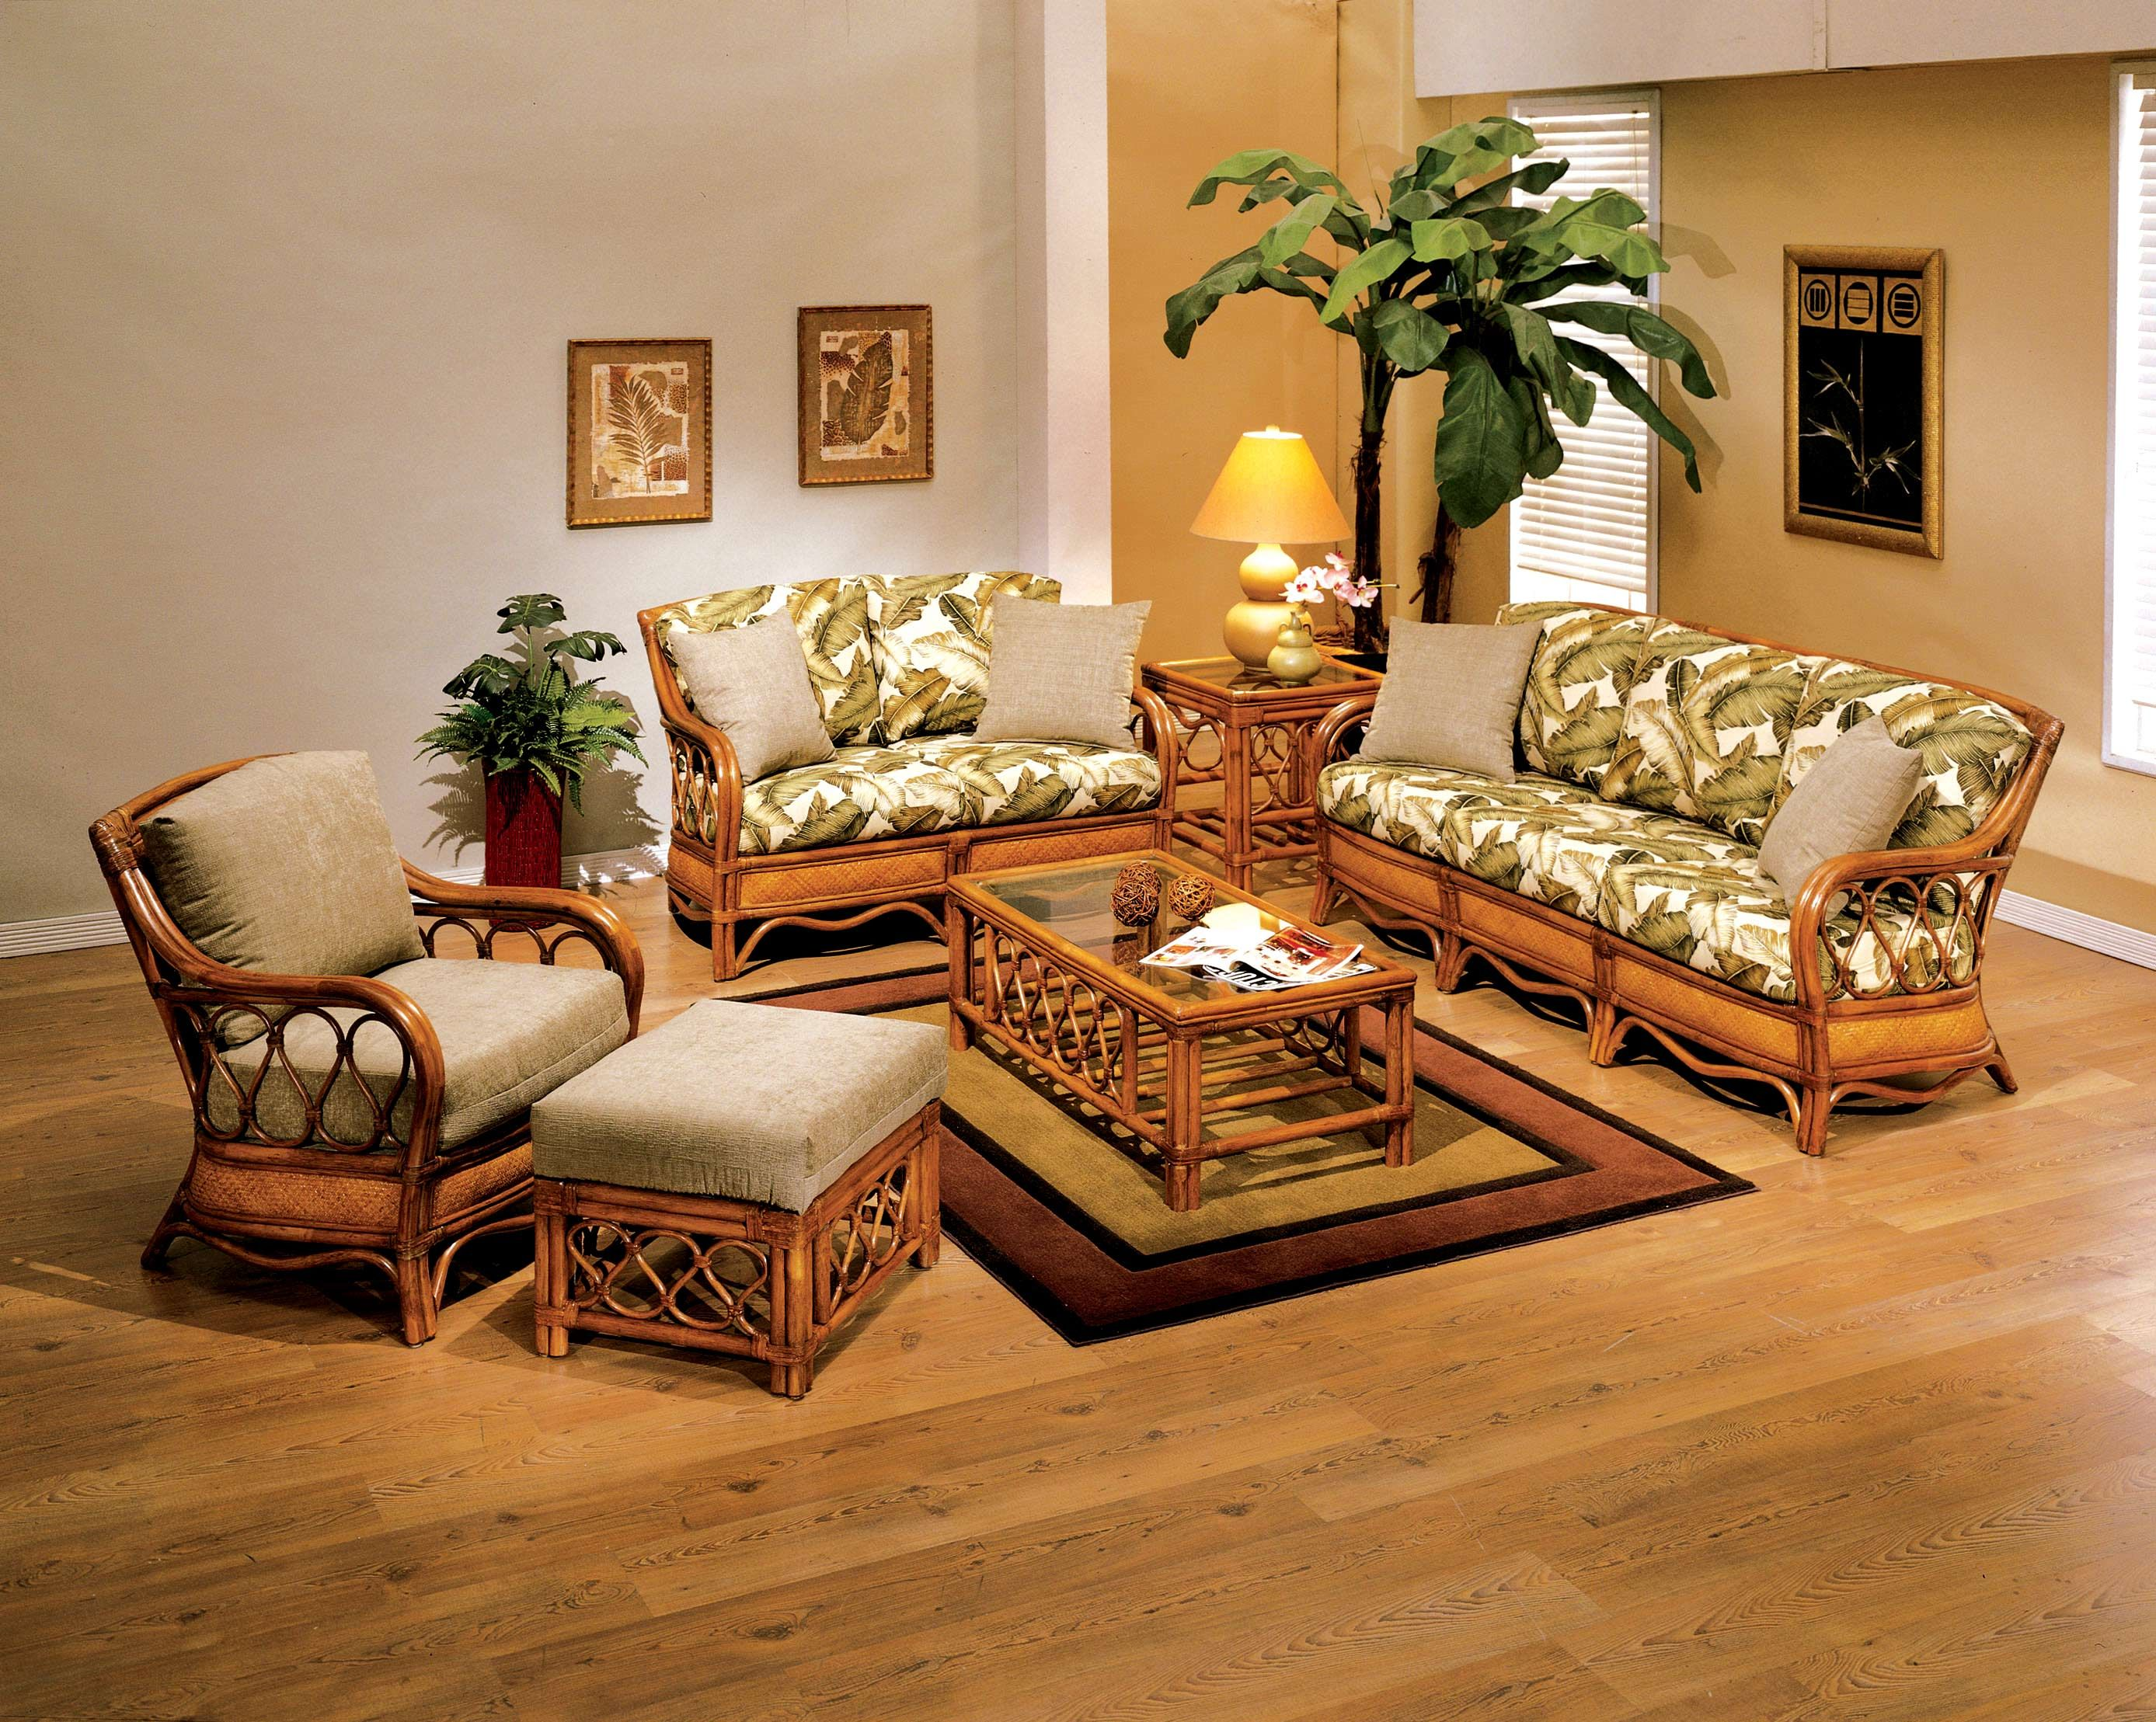 Rattan Living Room Chair Lowes Furniture Wicker Bamboo Chairs Gallery 1